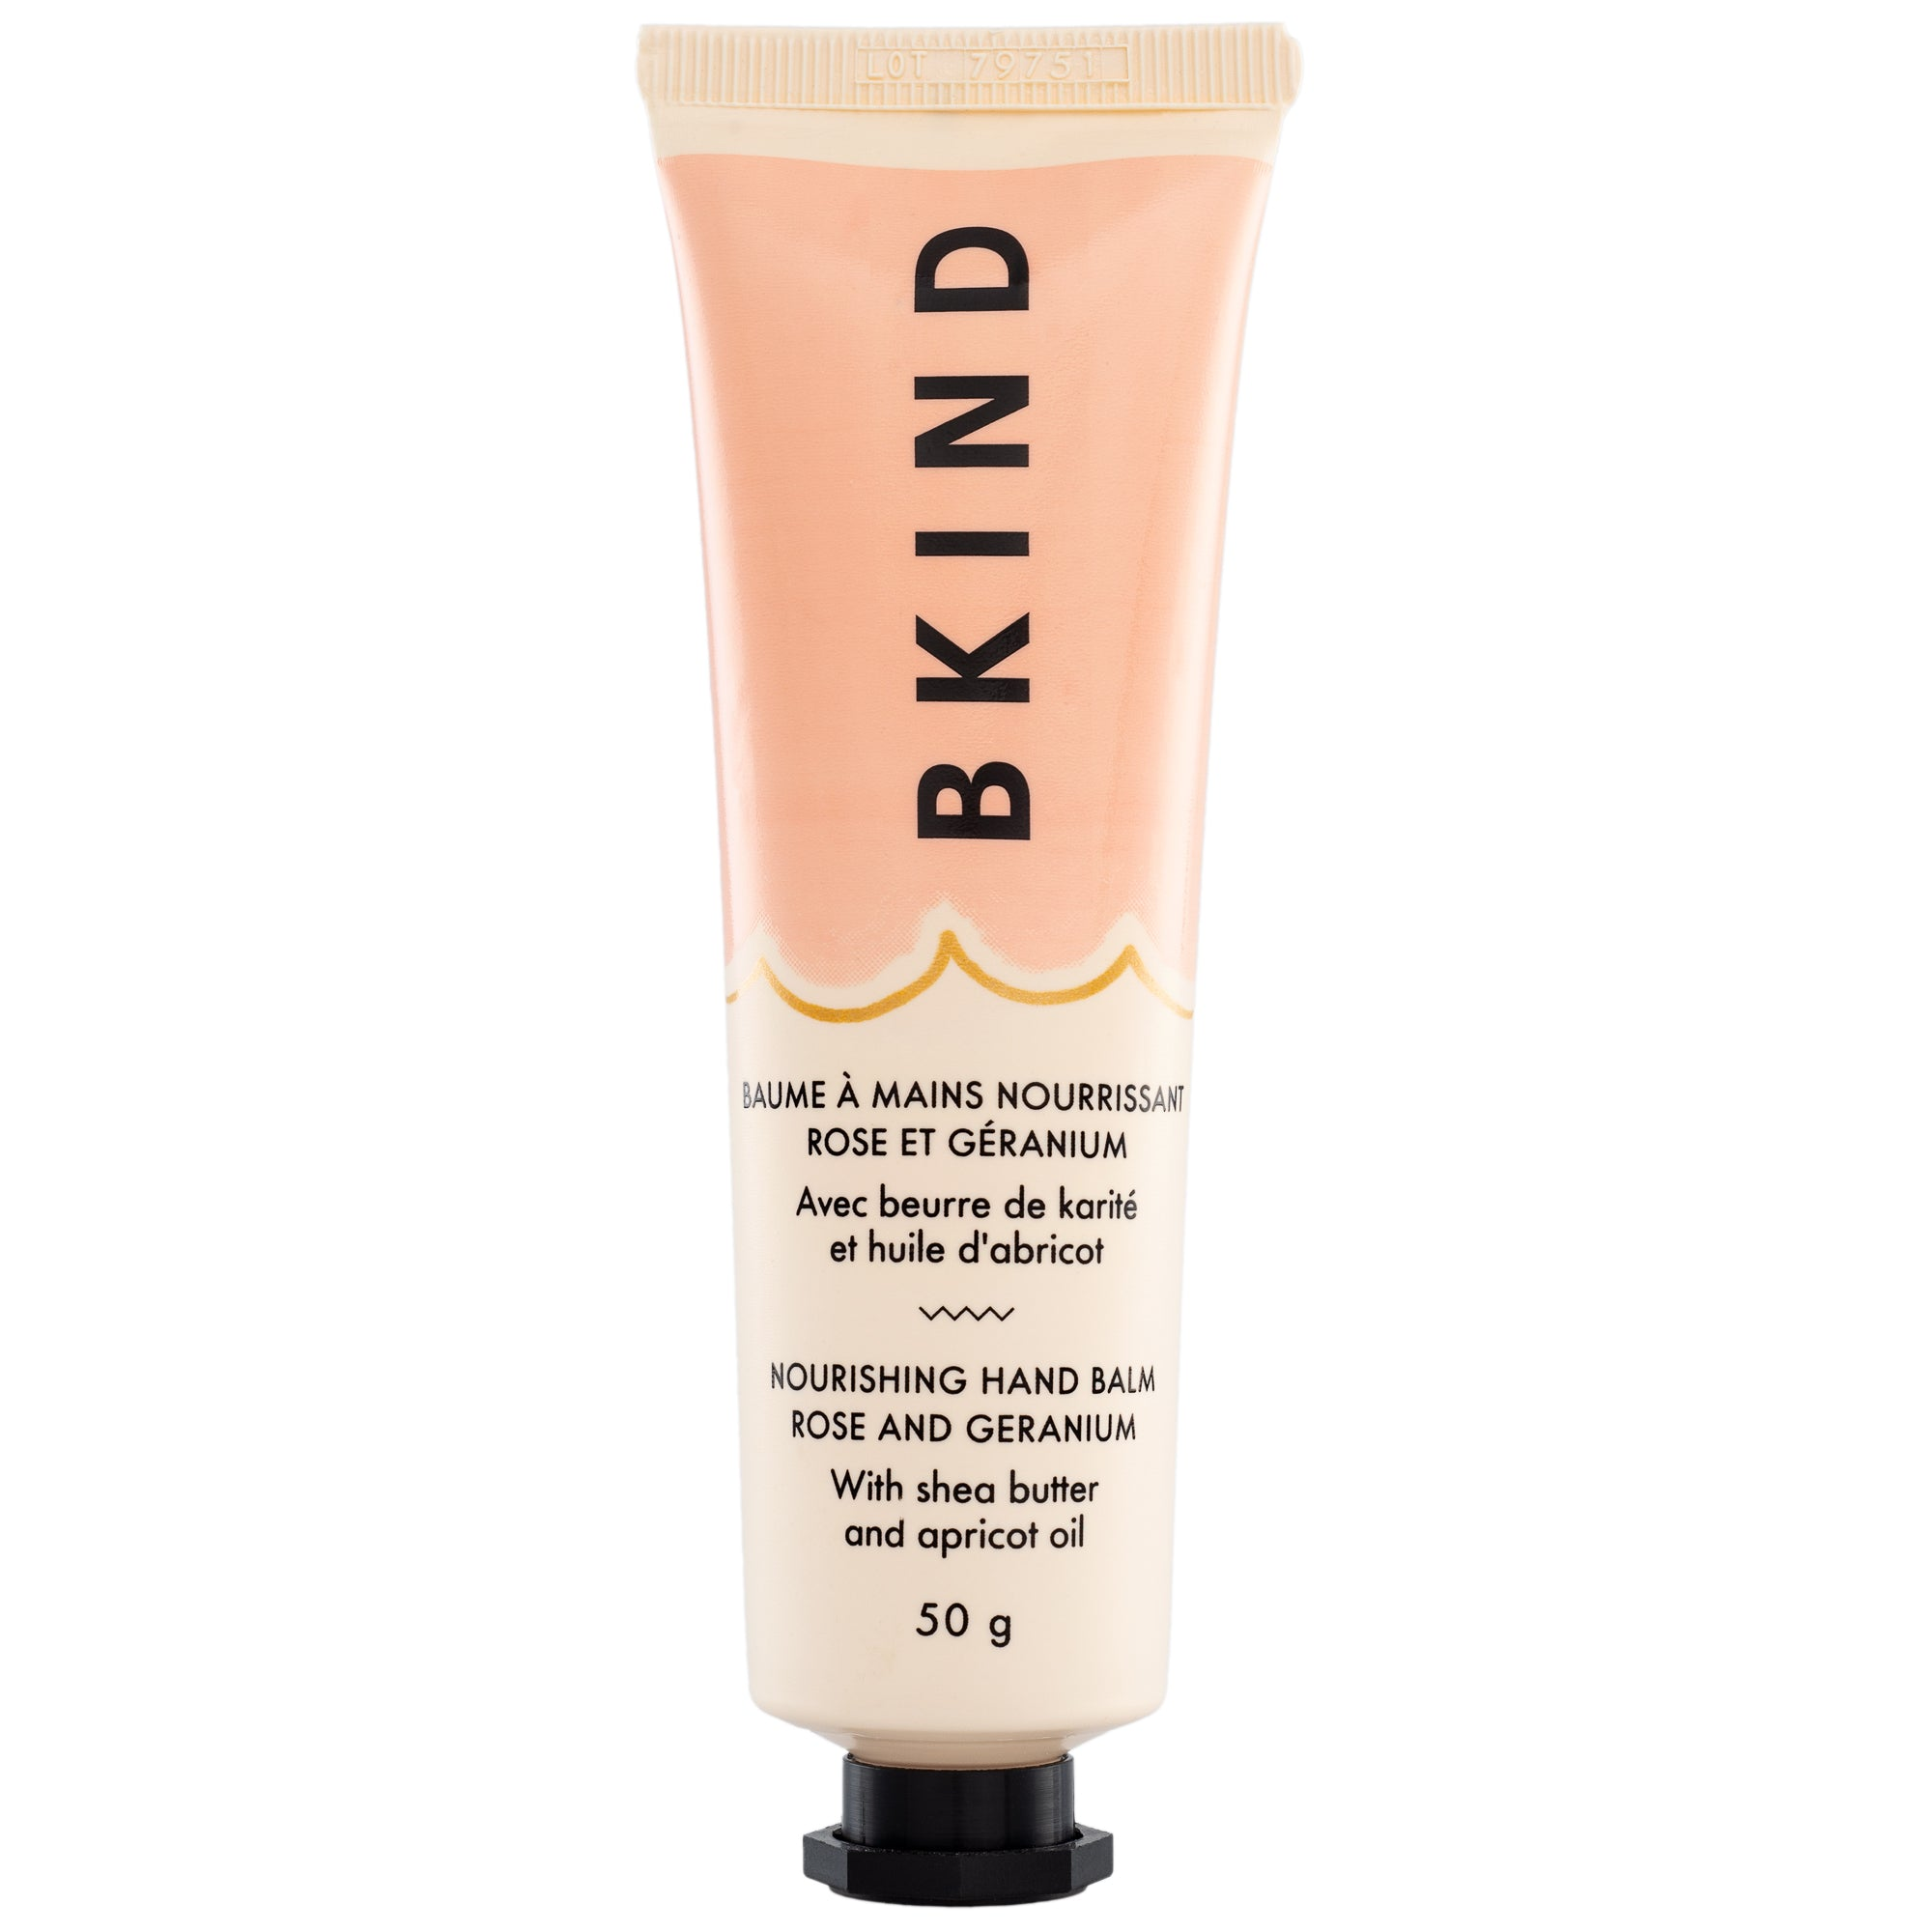 BKIND Nourishing Hand Balm Rose and Geranium